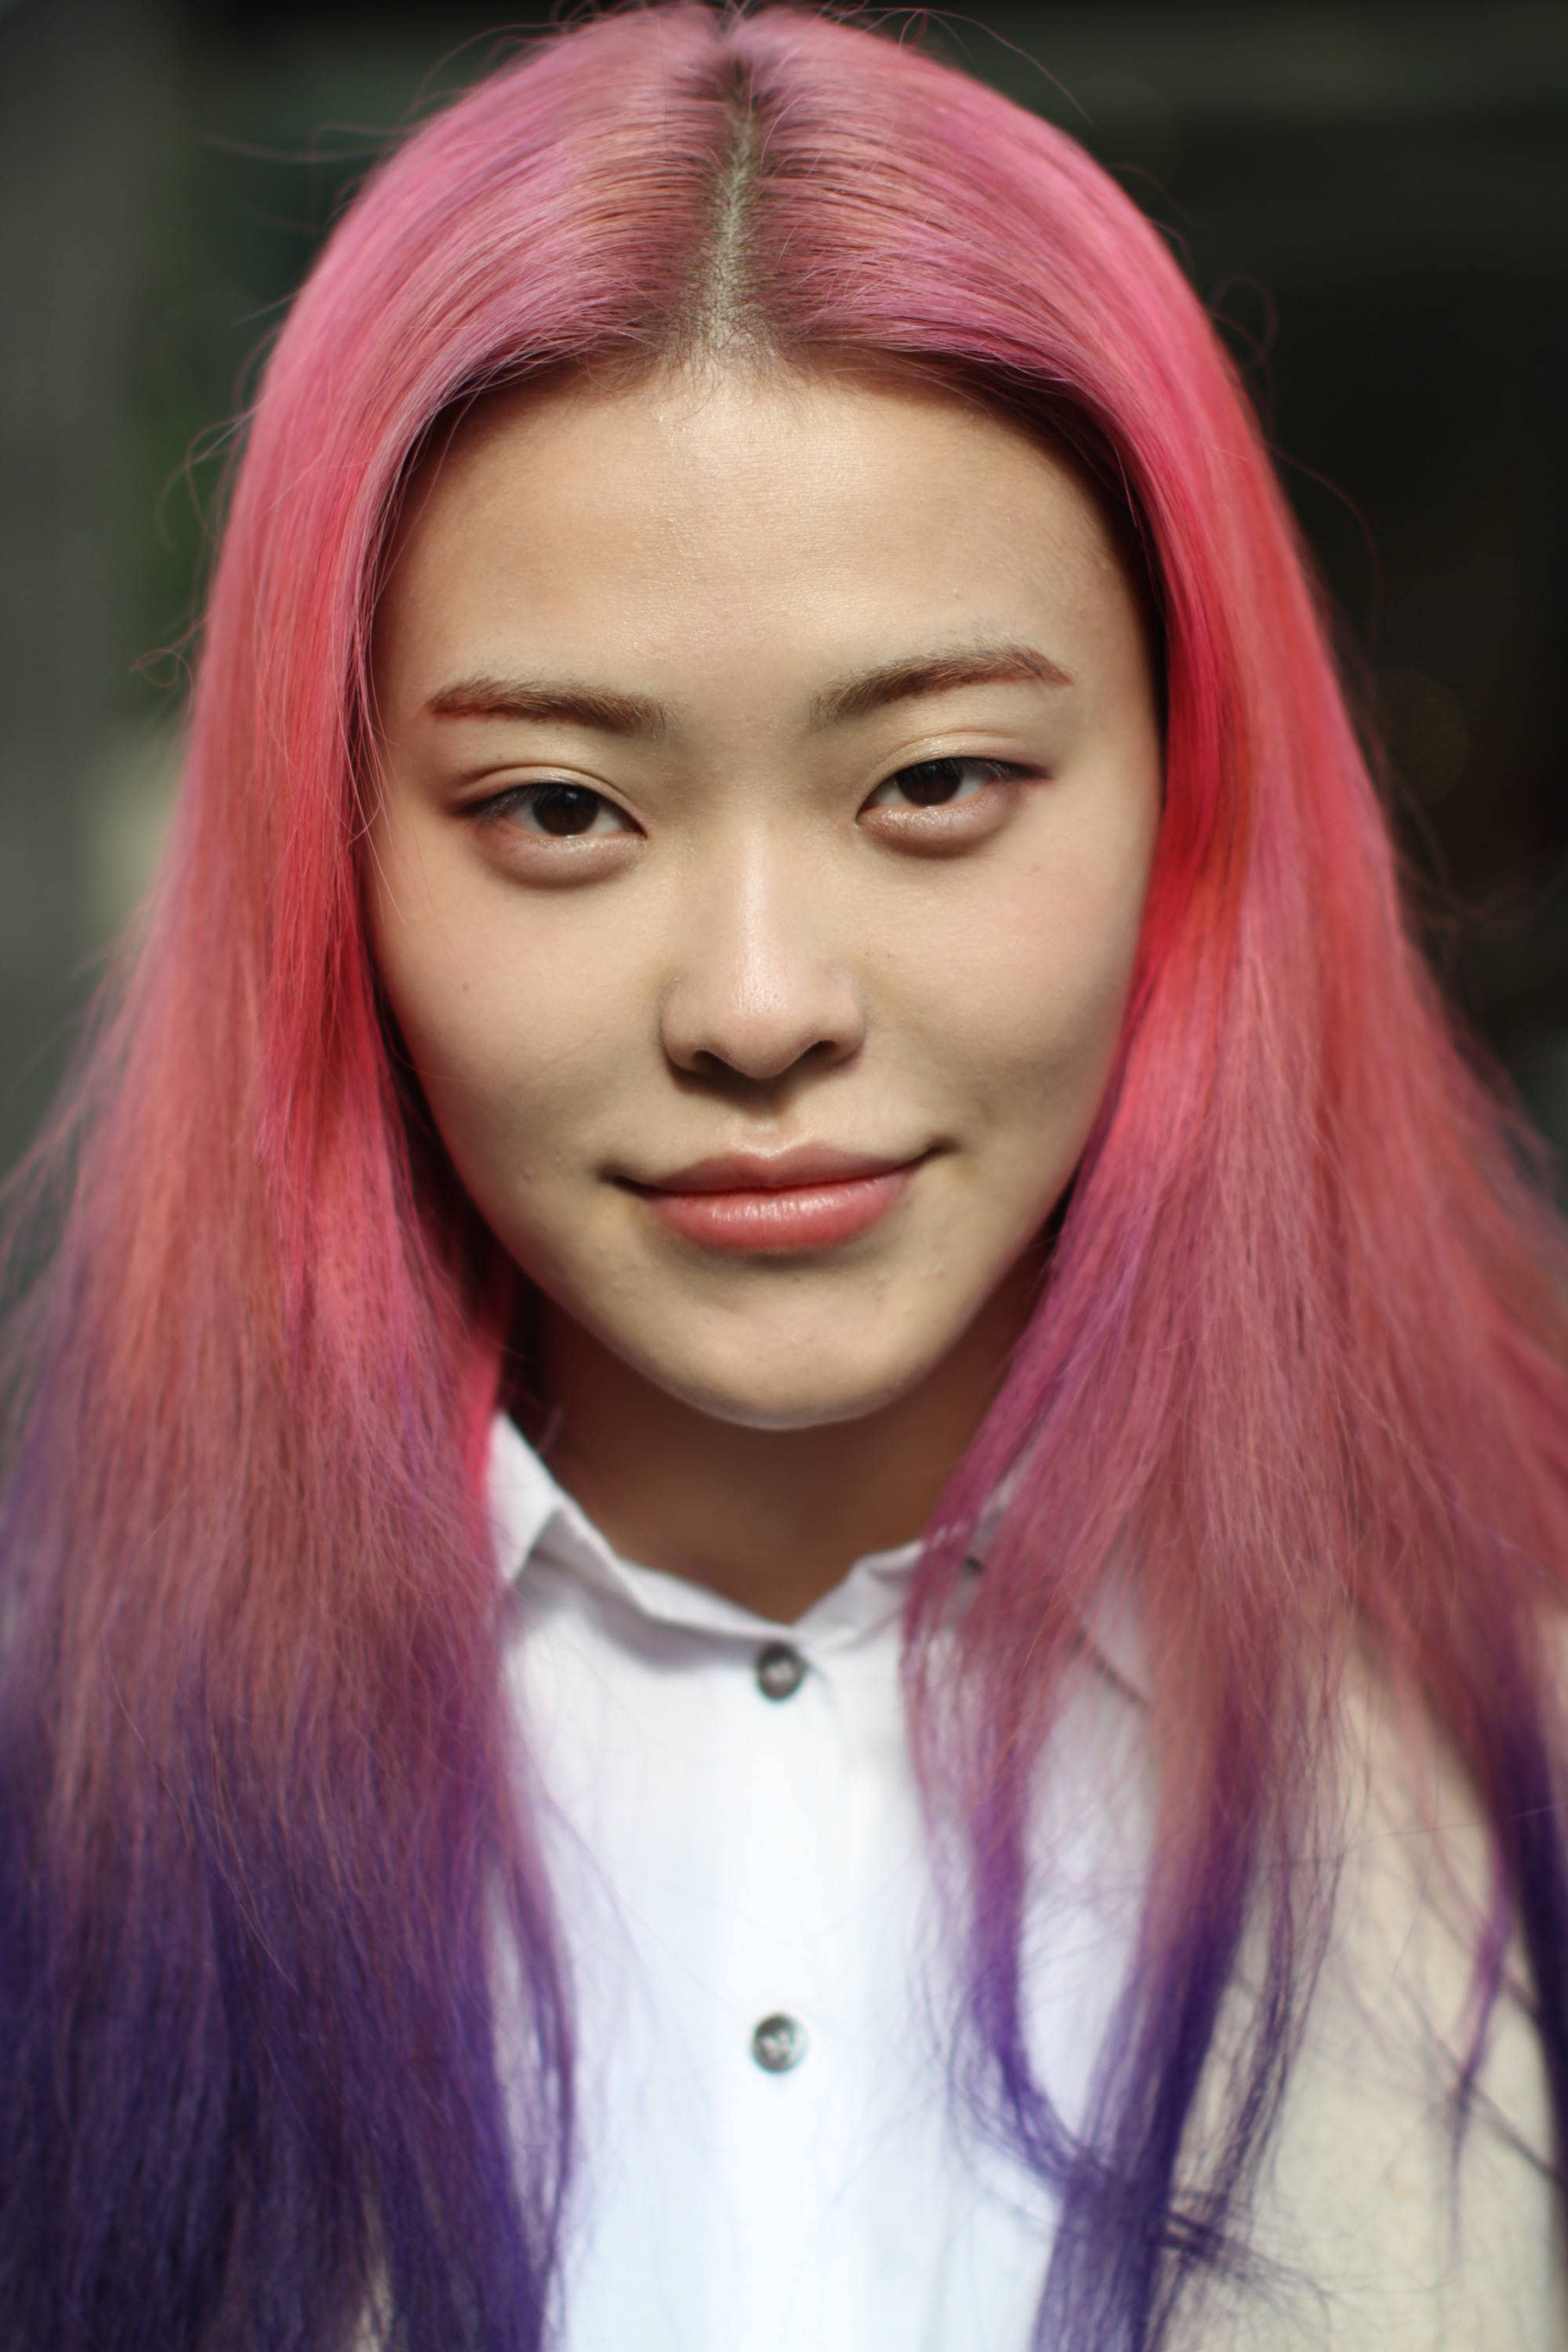 Pink ombre hair: Close-up headshot of a street styler with straight long pink to purple ombre hair, wearing a white shirt